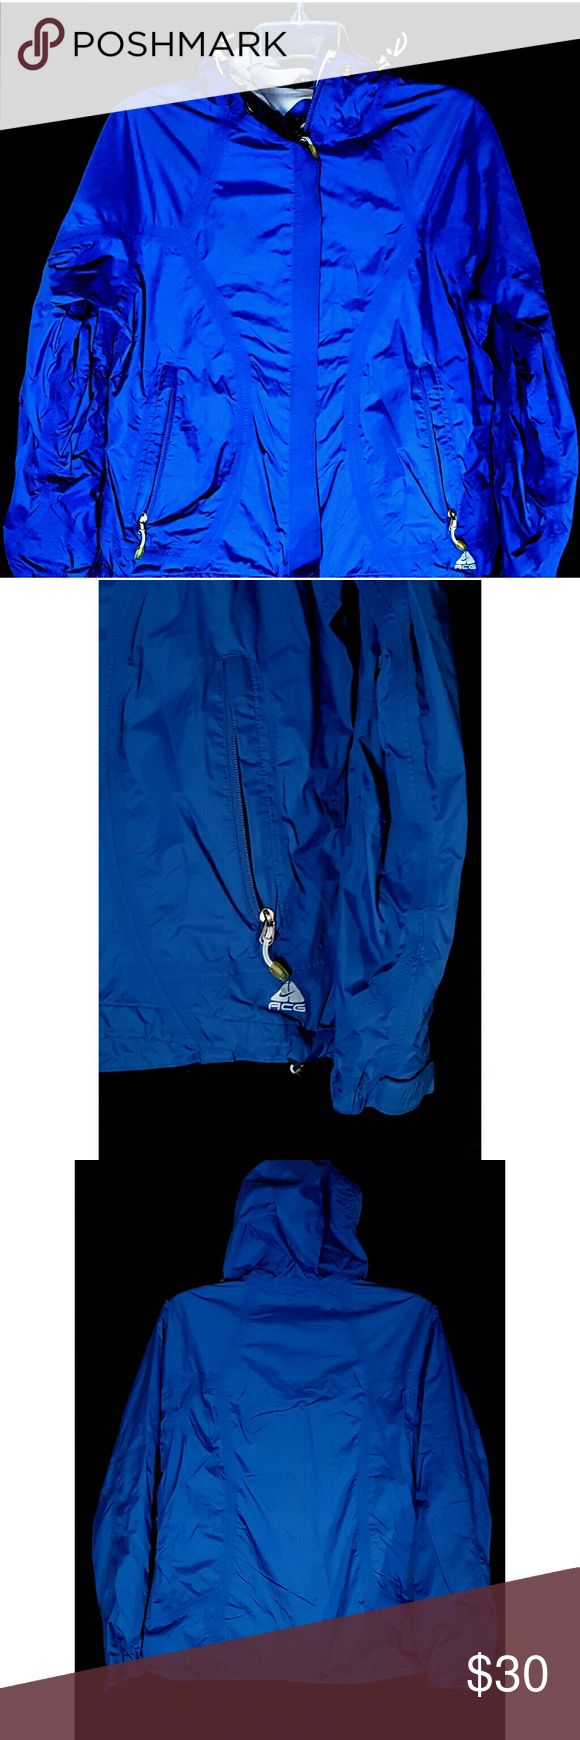 Nike ACG 3 Blue Lightweight Lined Track Jacket Nike ACG 3 Blue Lightweight Lined Track Jacket Size Large Measurements on Request Excellent Condition  Condition Rank 8/10 Pre Owned Clean  No snags rips or marks Thanks We Ship Fast Nike ACG Jackets & Coats